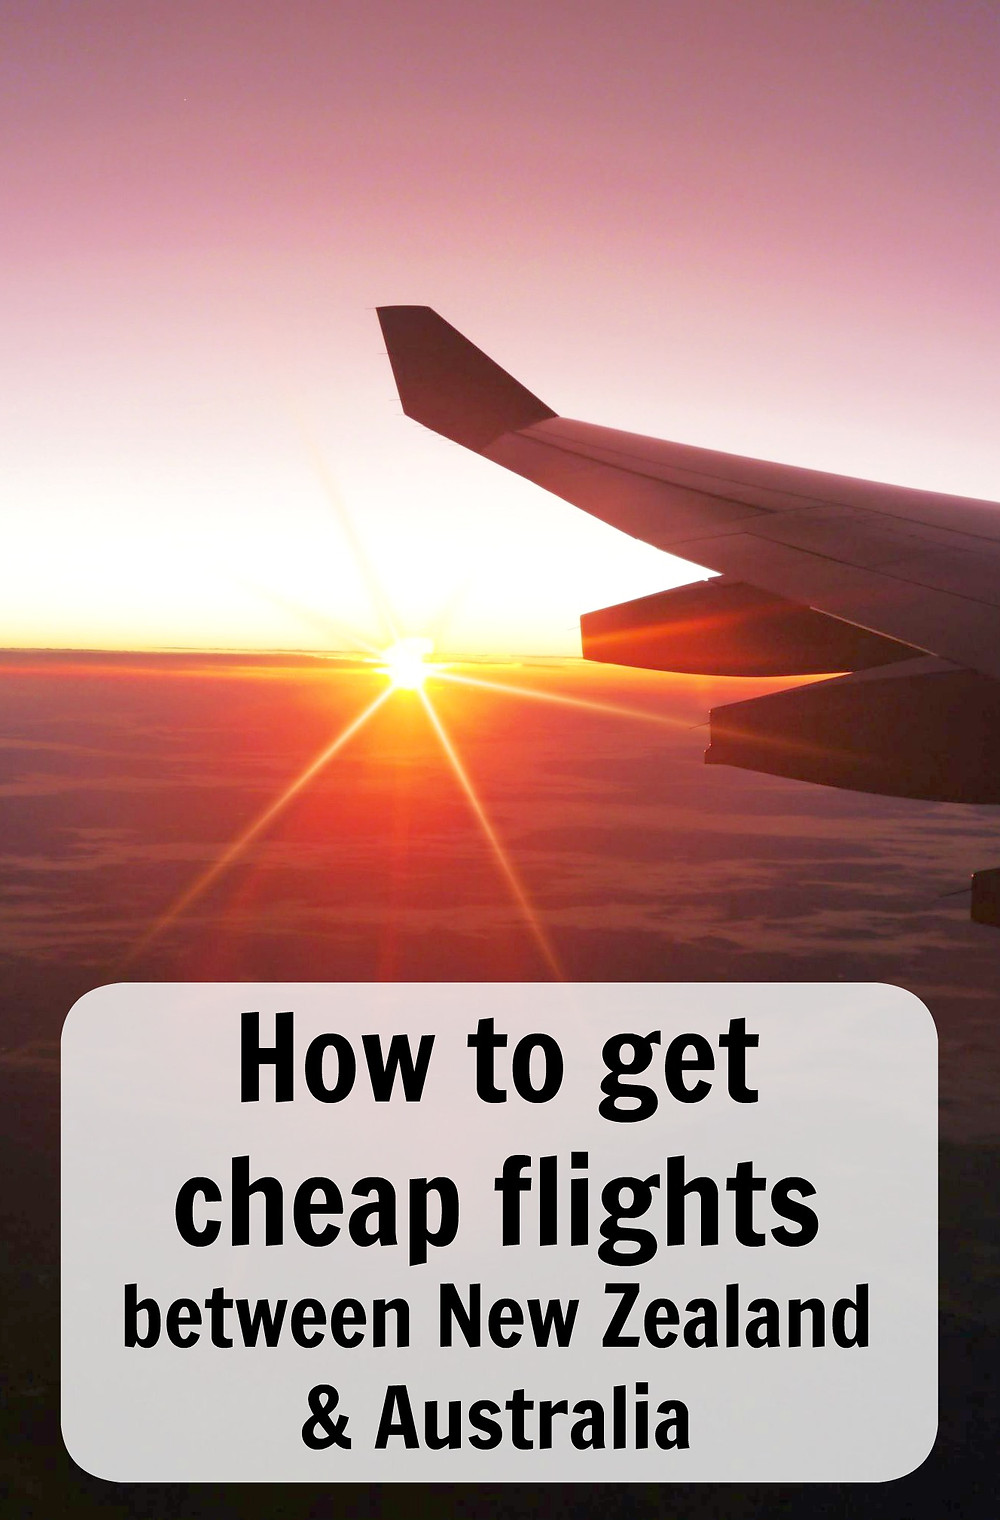 how to get cheap flights between New Zealand and Australia